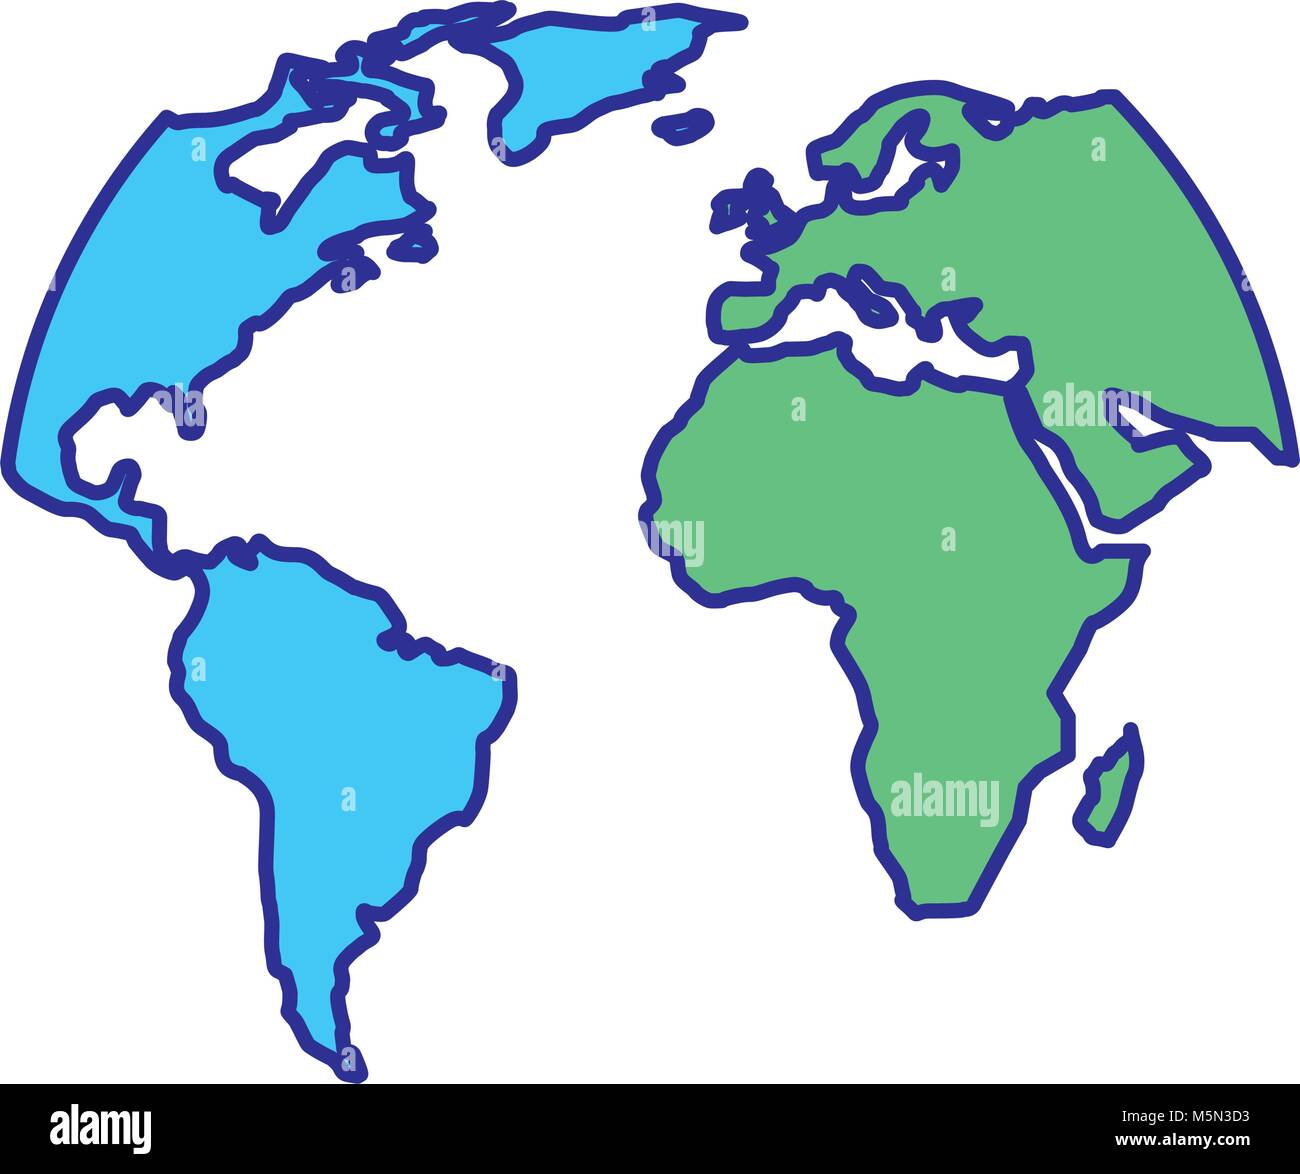 Silhouette world map location planet stock vector art illustration silhouette world map location planet gumiabroncs Choice Image